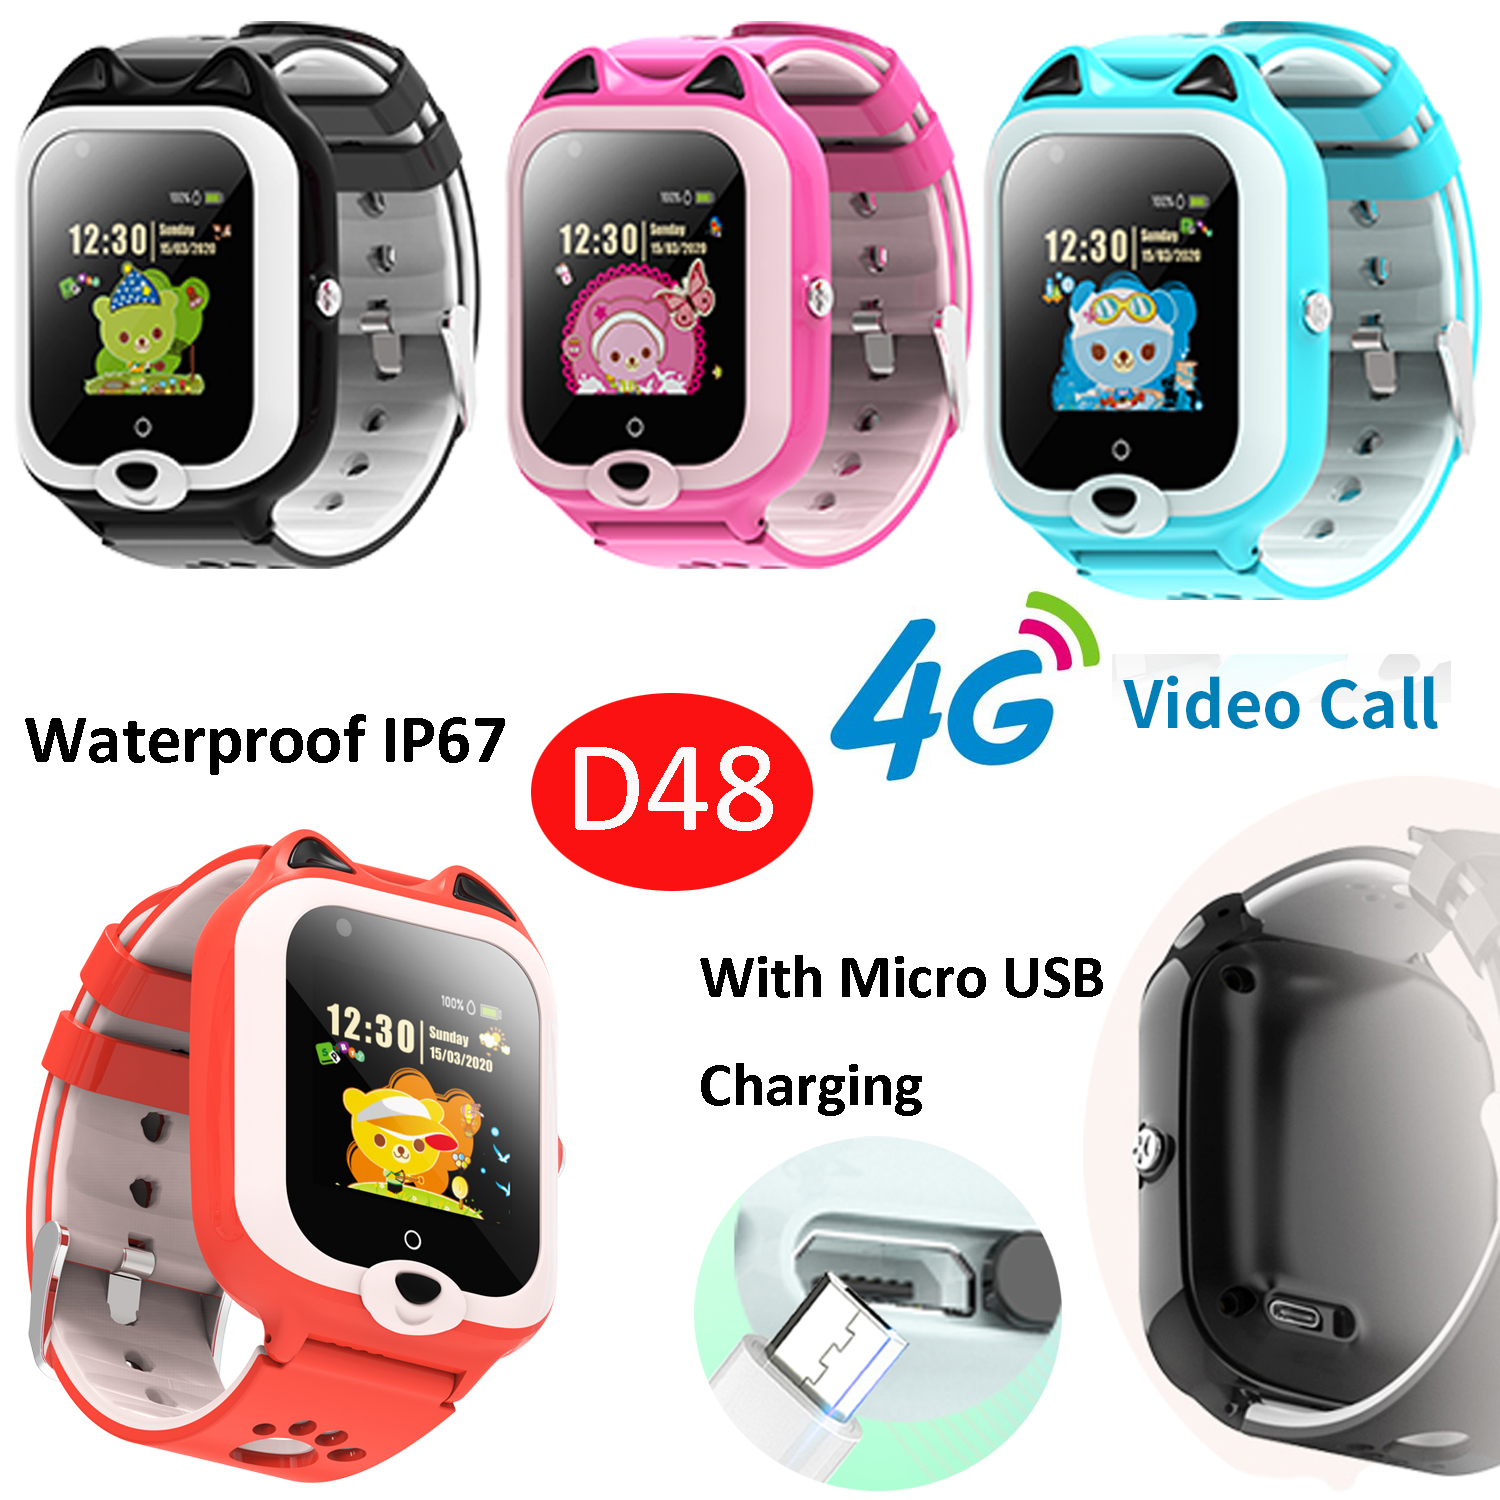 2020 New Cute IP67 Waterproof Multi-languges Kids GPS Tracker watch Phone with Video call D48